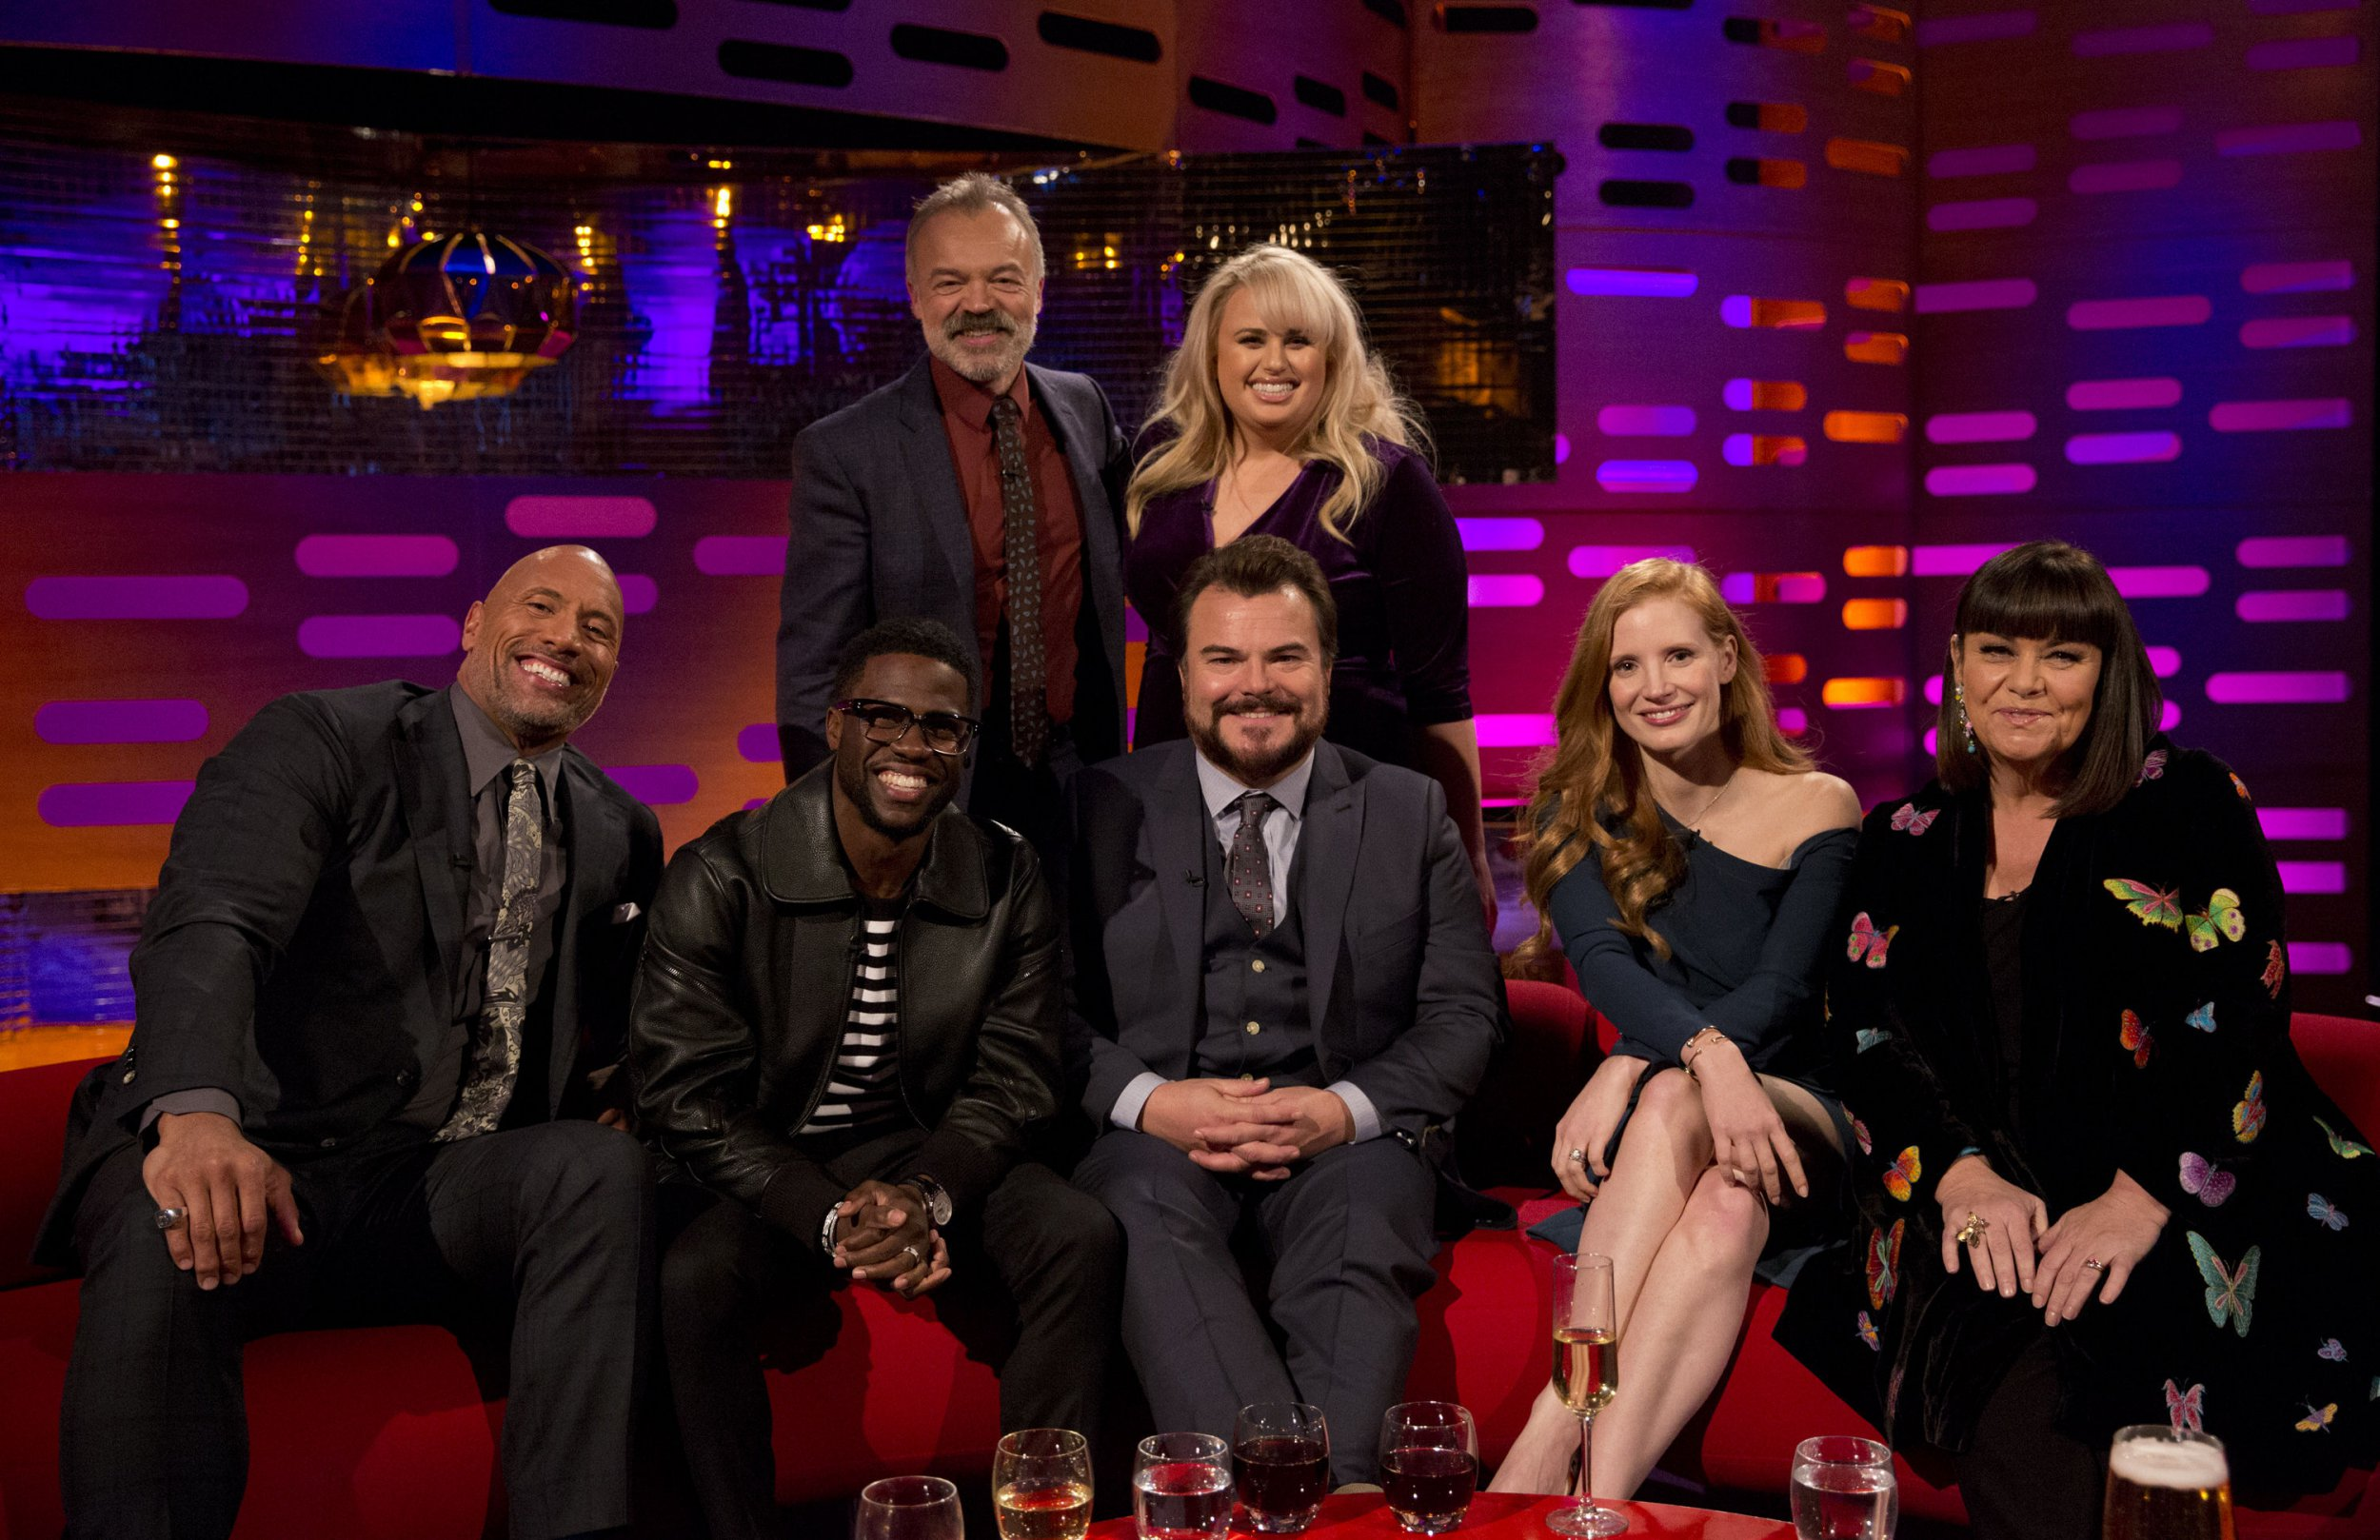 Who is on Graham Norton tonight? Dwanye Johnson, Kevin Hart and many more